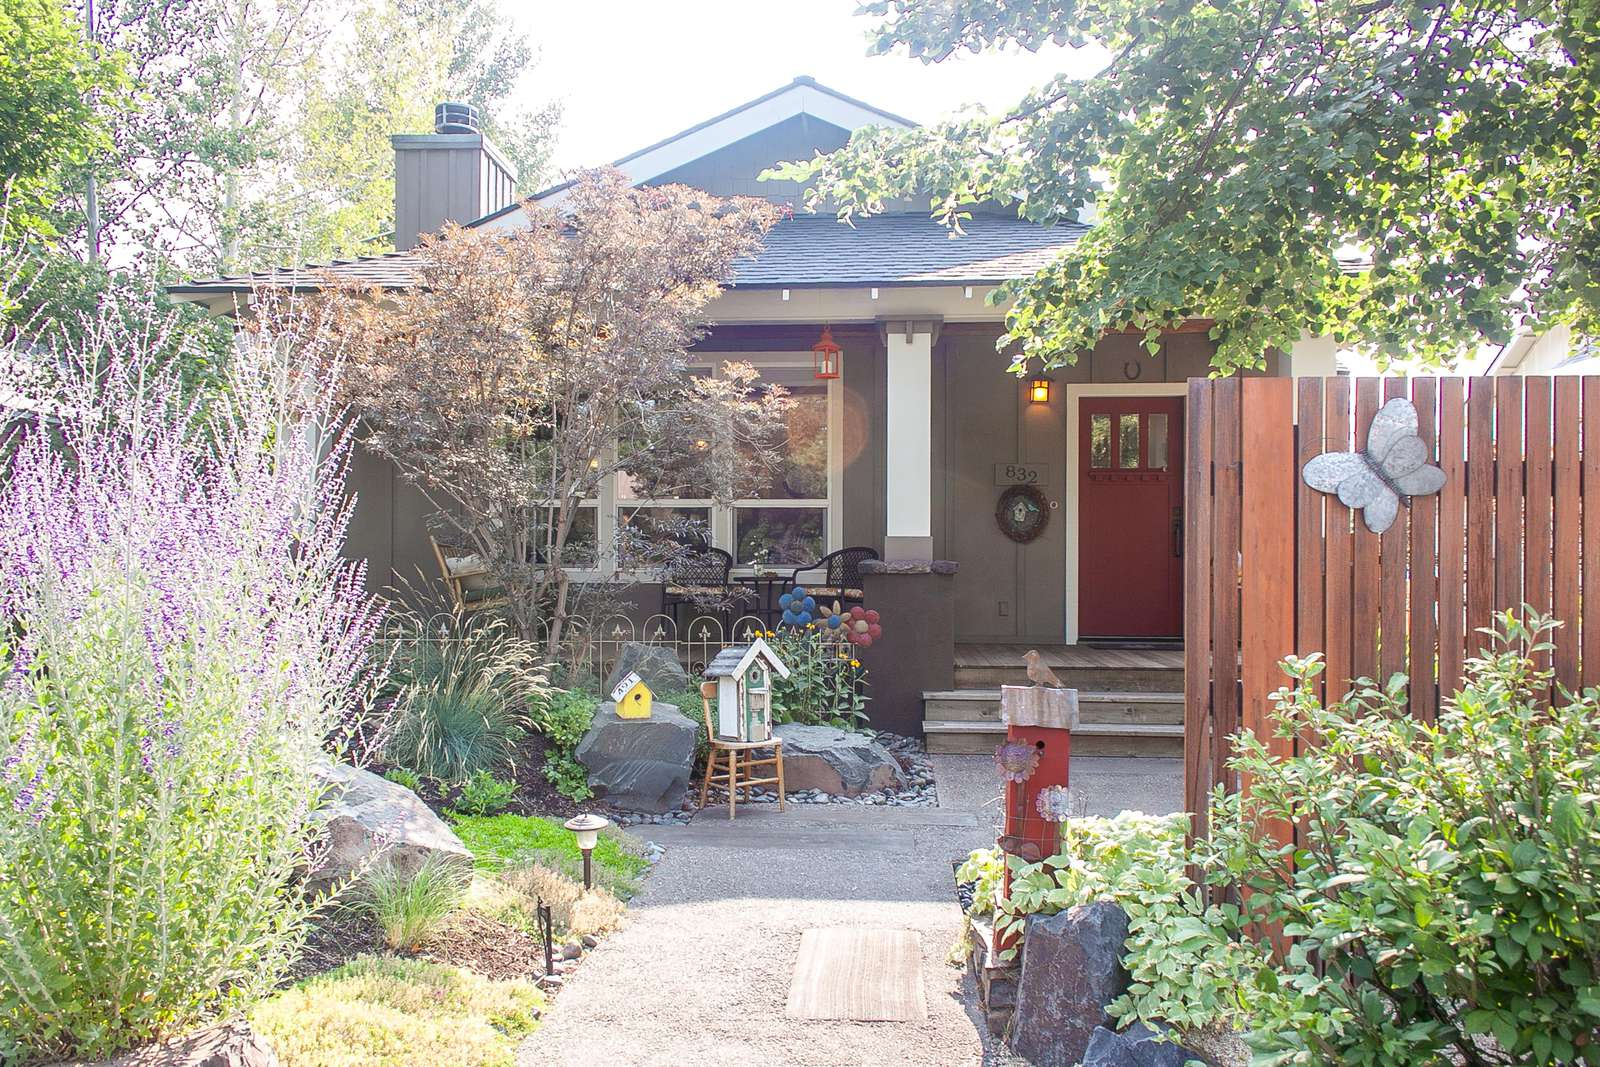 Bella Bird Bungalow is a garden oasis in the heart of Bend. Meander and peruse, the details are delightful! - property